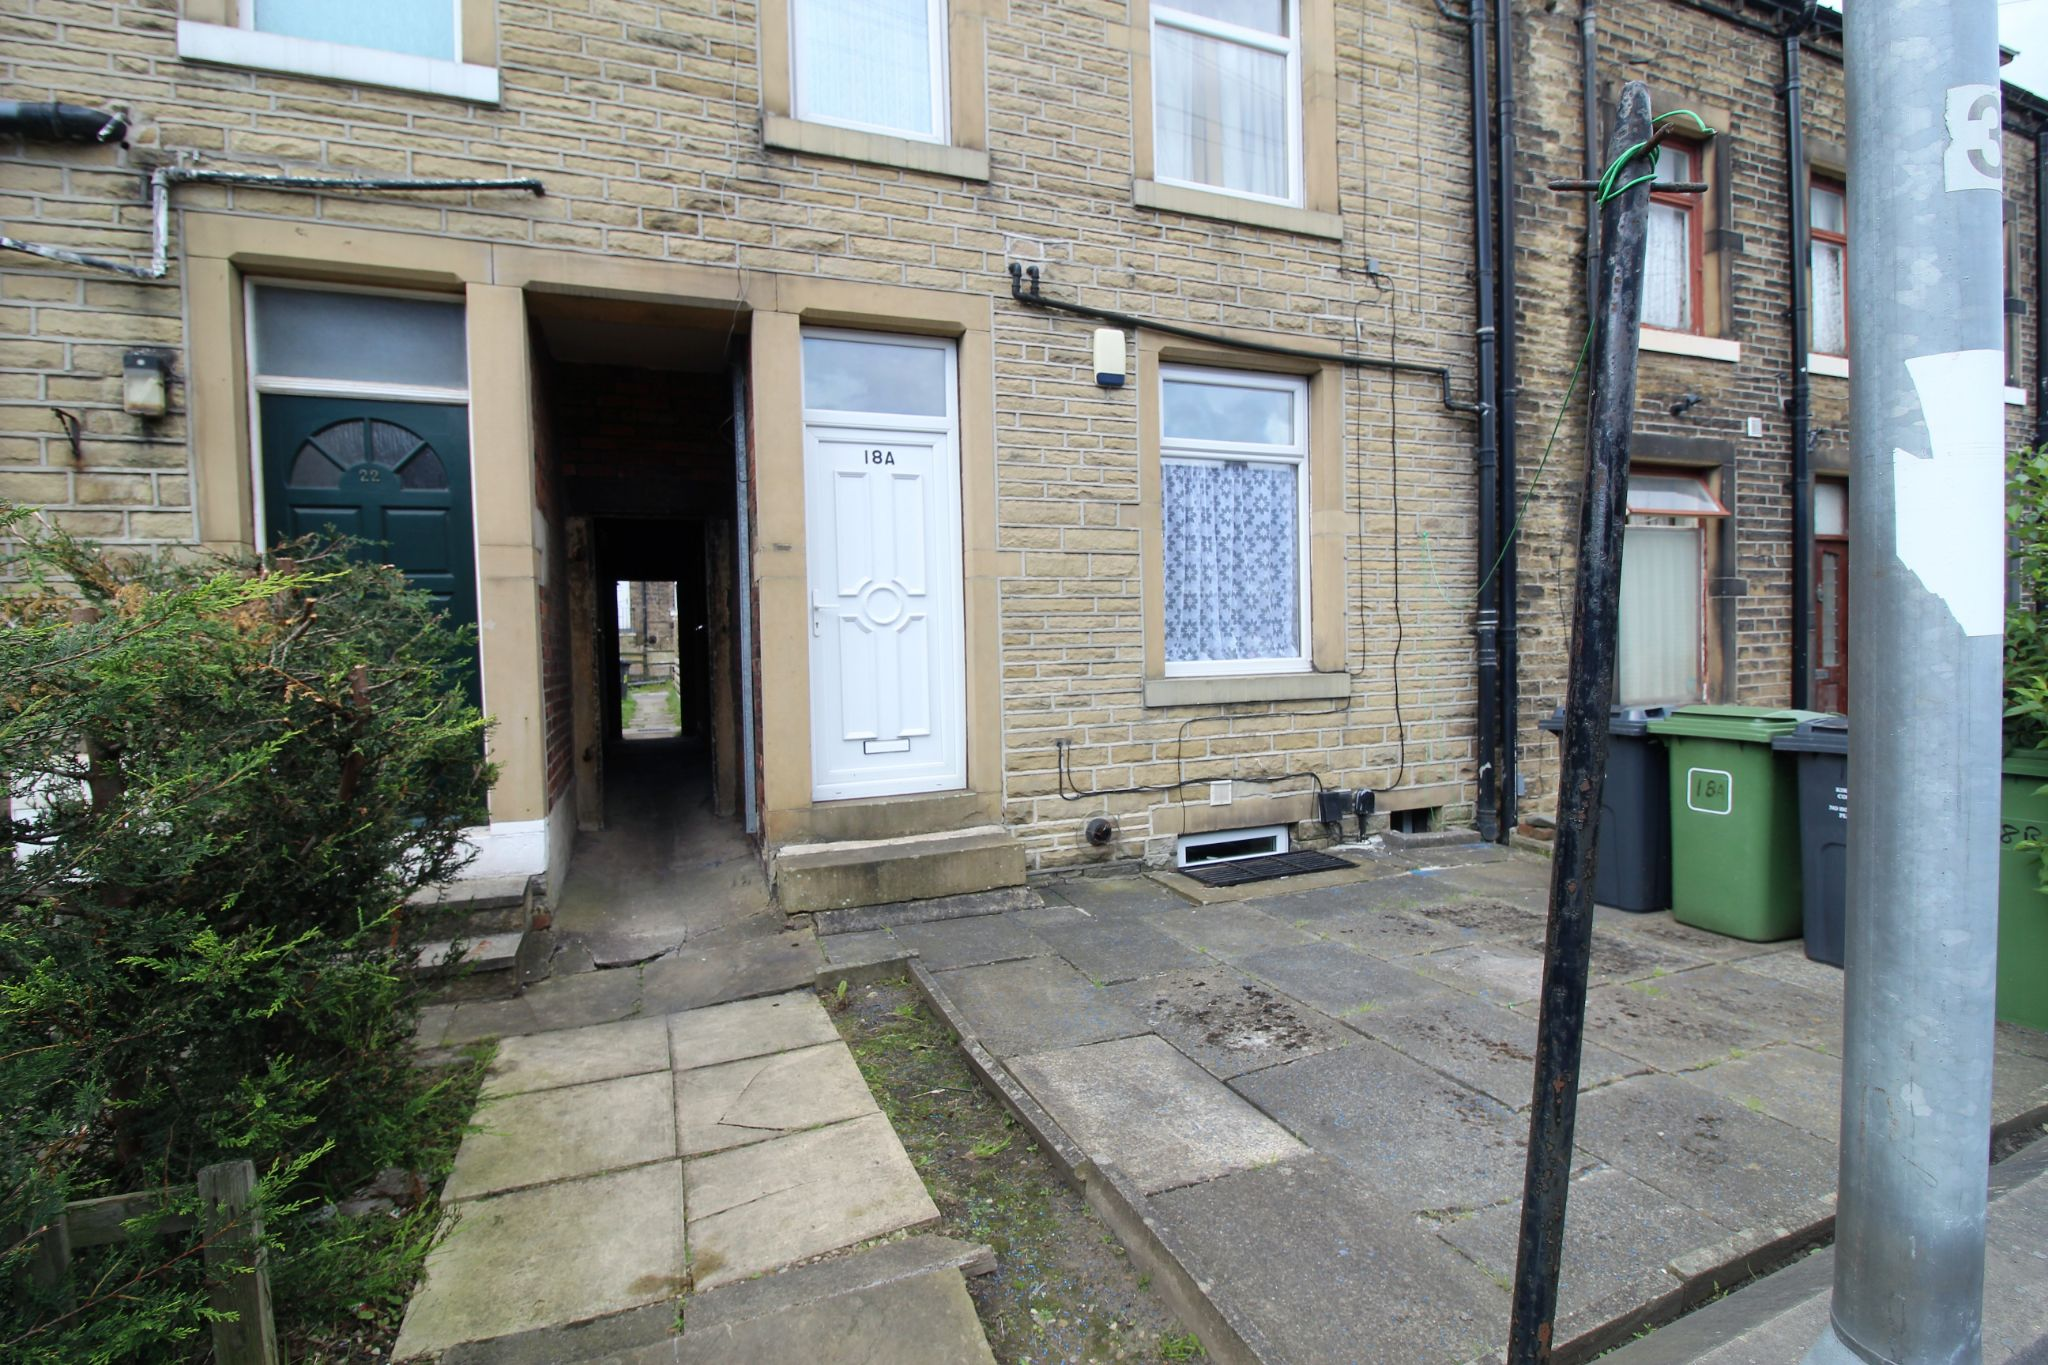 1 bedroom maisonette flat/apartment To Let in Huddersfield - Front elevation